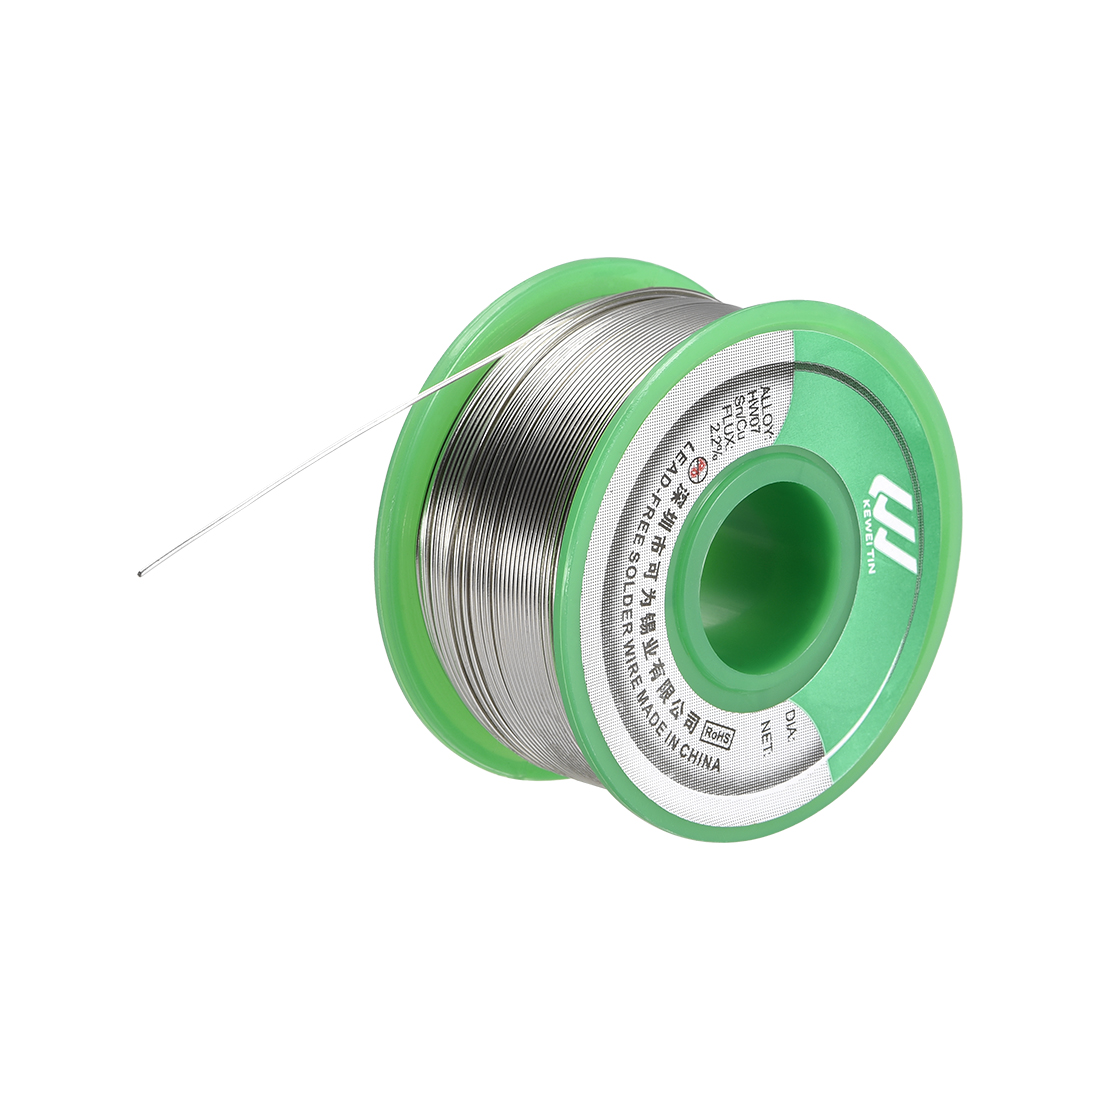 Lead Free Solder Wire 0.6mm 100g Sn99.3% Cu0.7% with Rosin Core for Soldering